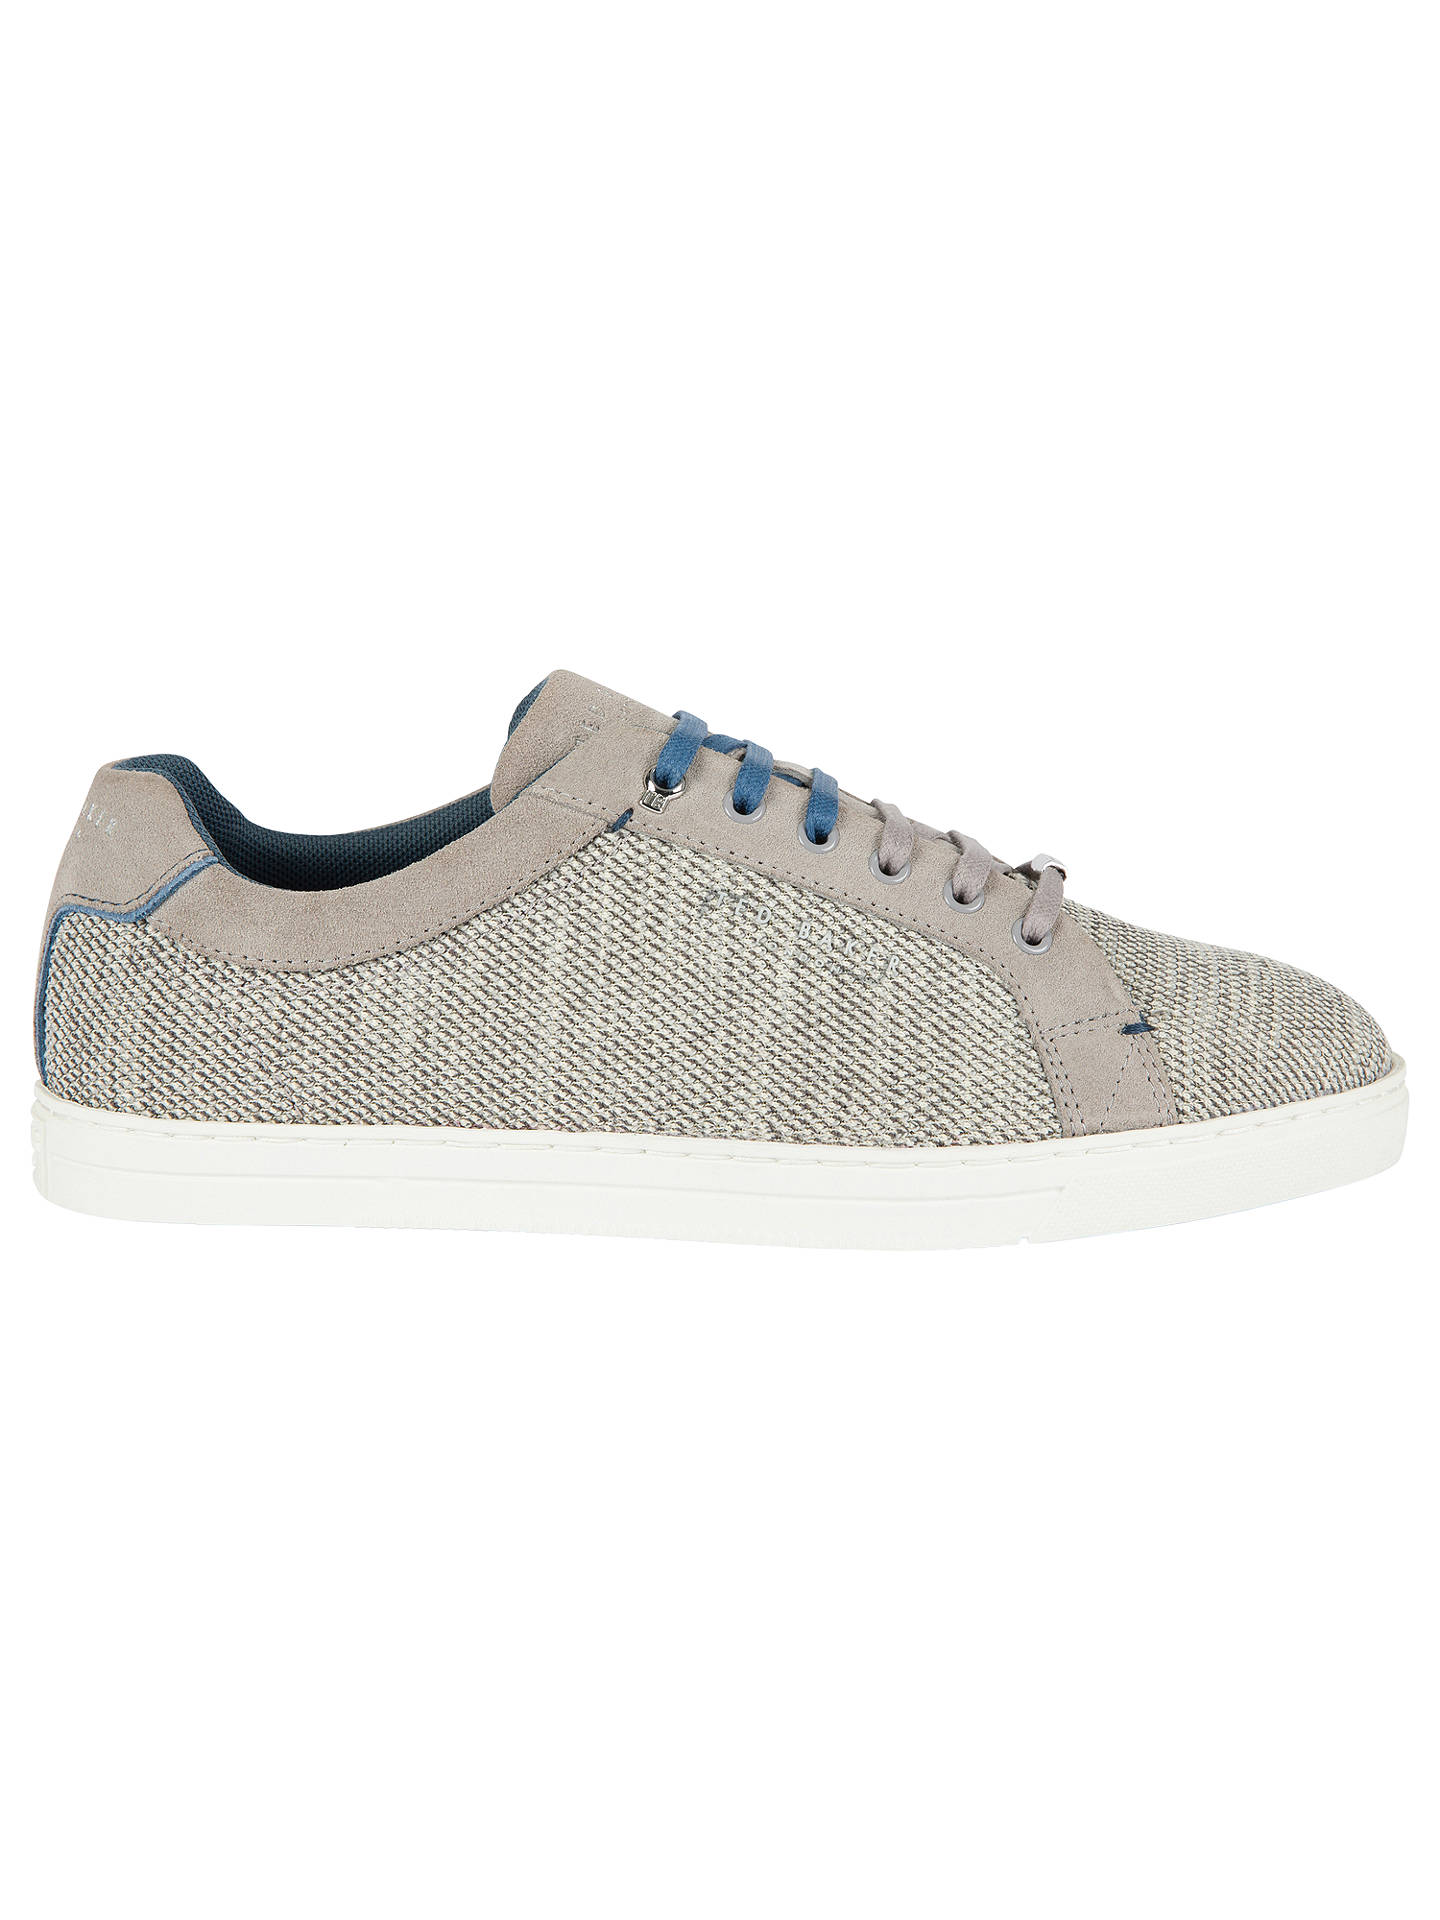 BuyTed Baker Demes Flyknit Cupsole Trainers, Grey, 6 Online at johnlewis.com